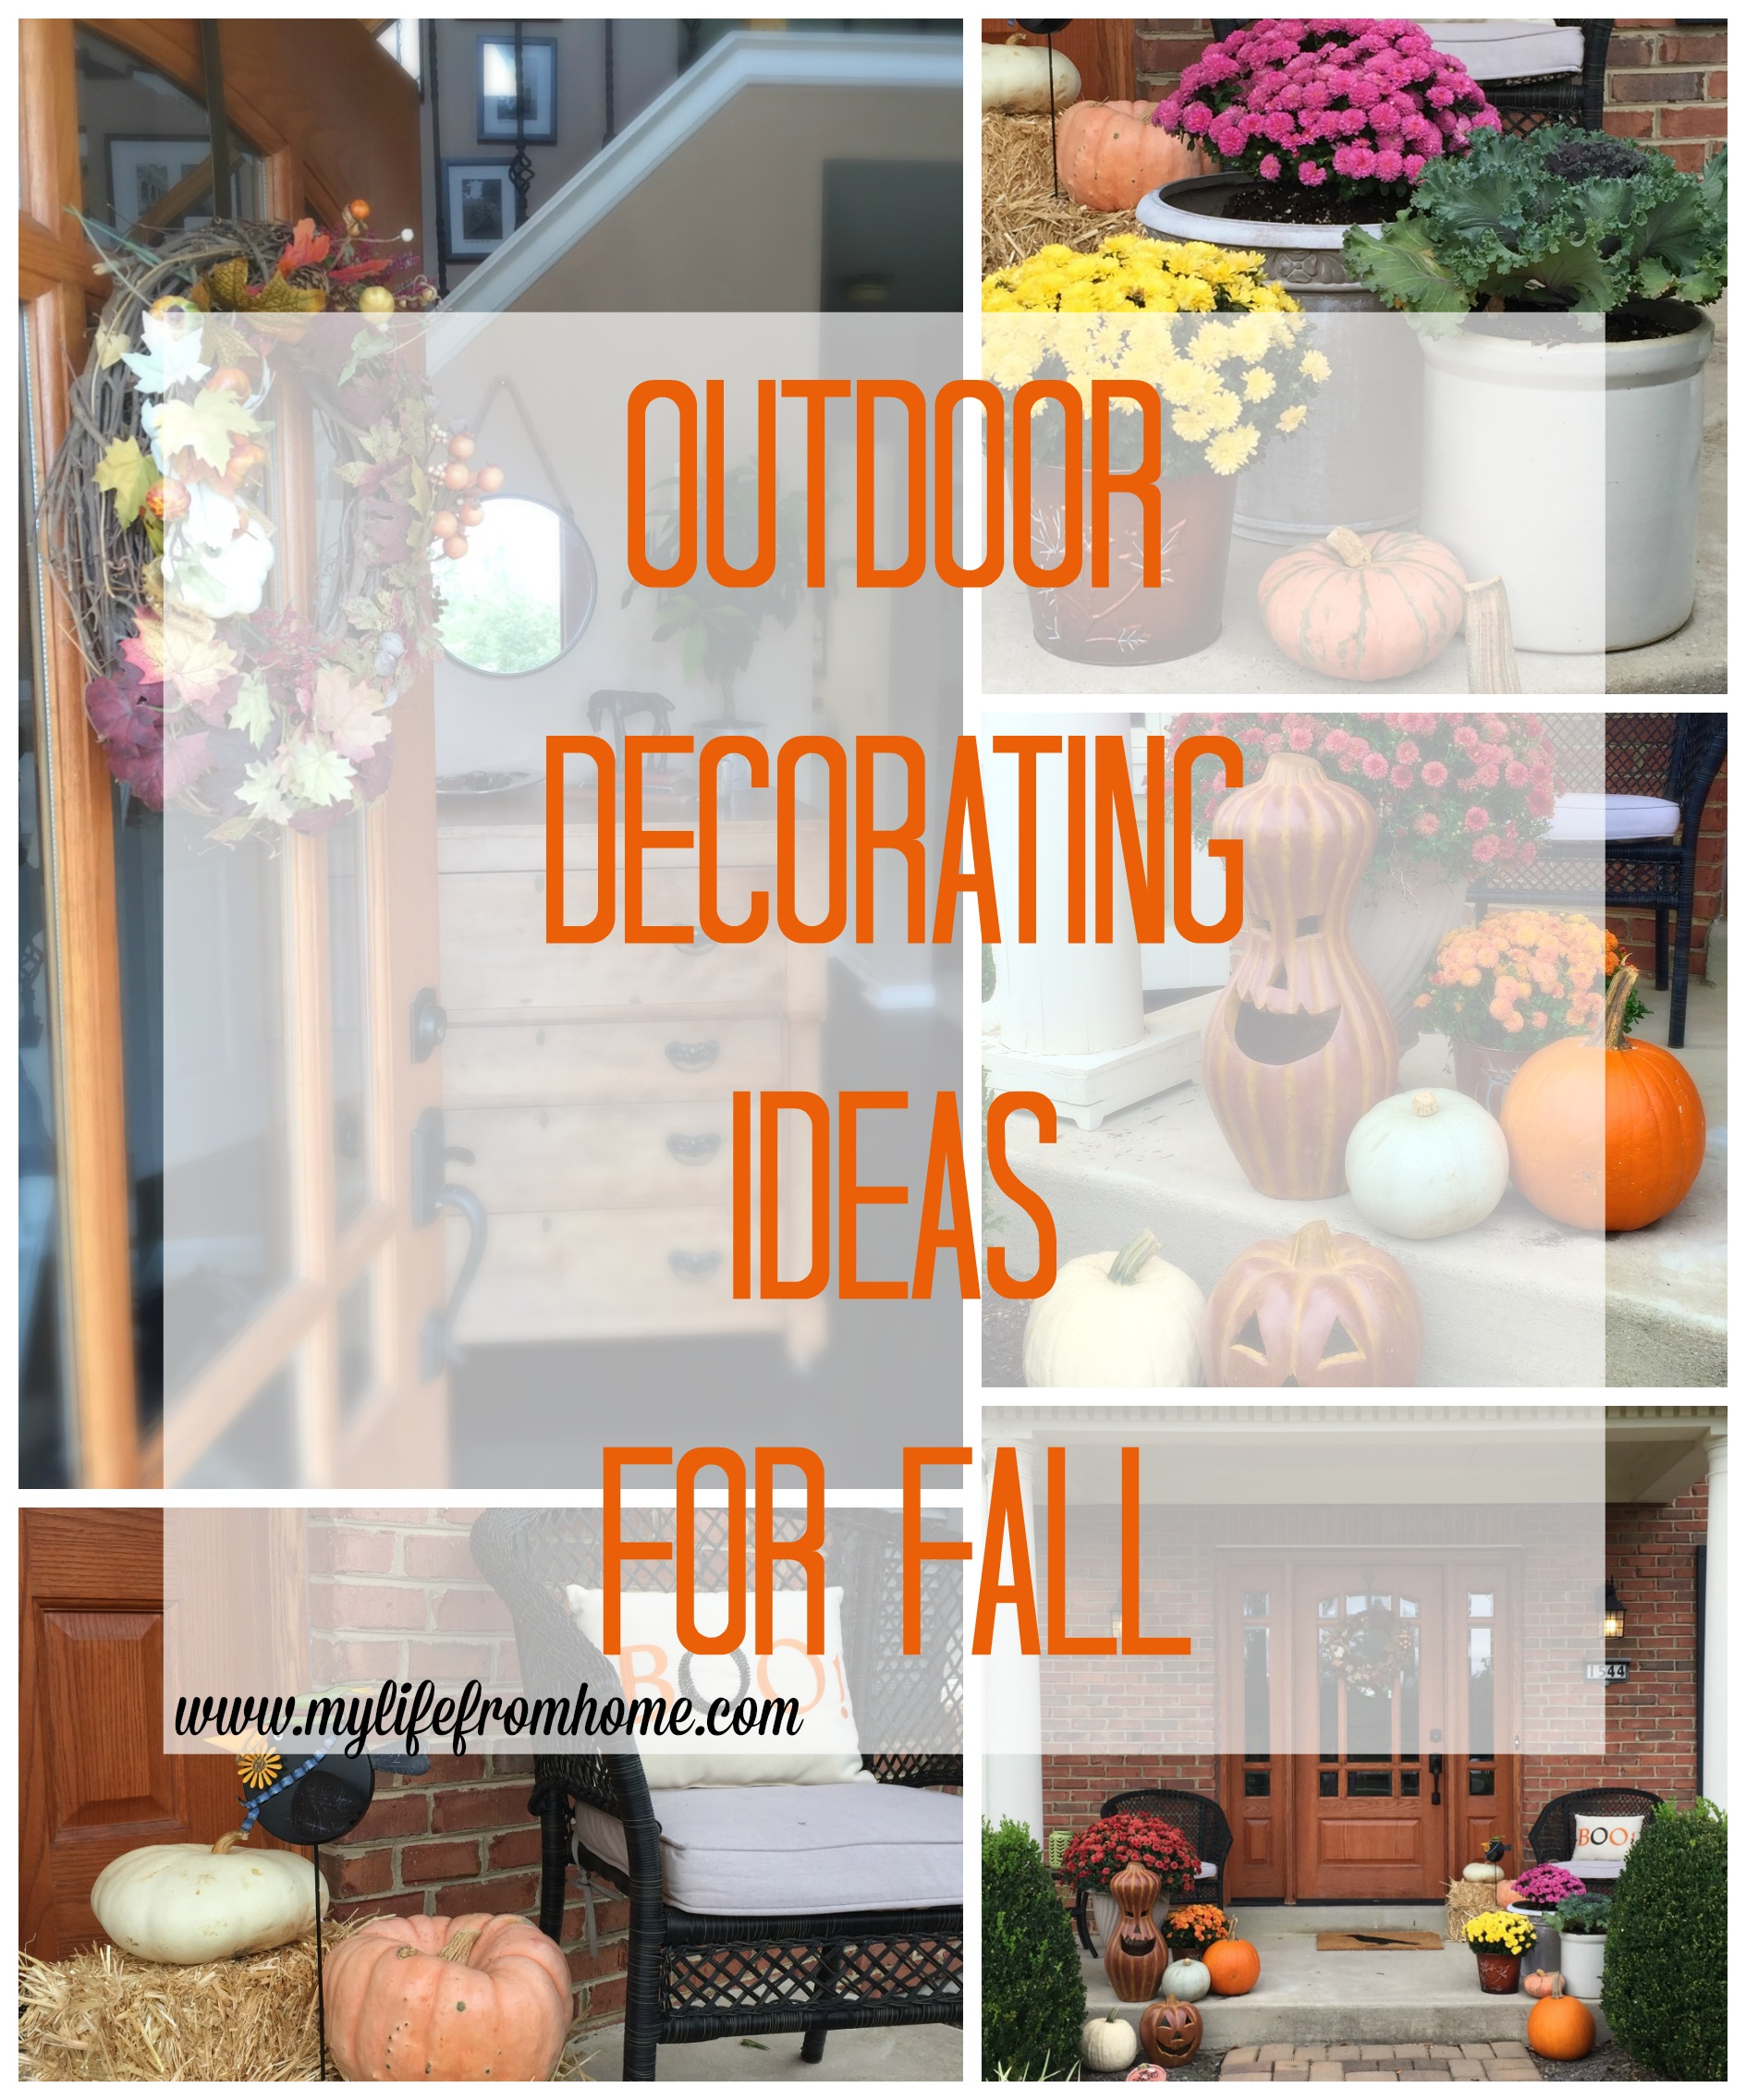 Outdoor Decorating Ideas for Fall by www.mylifefromhome.com